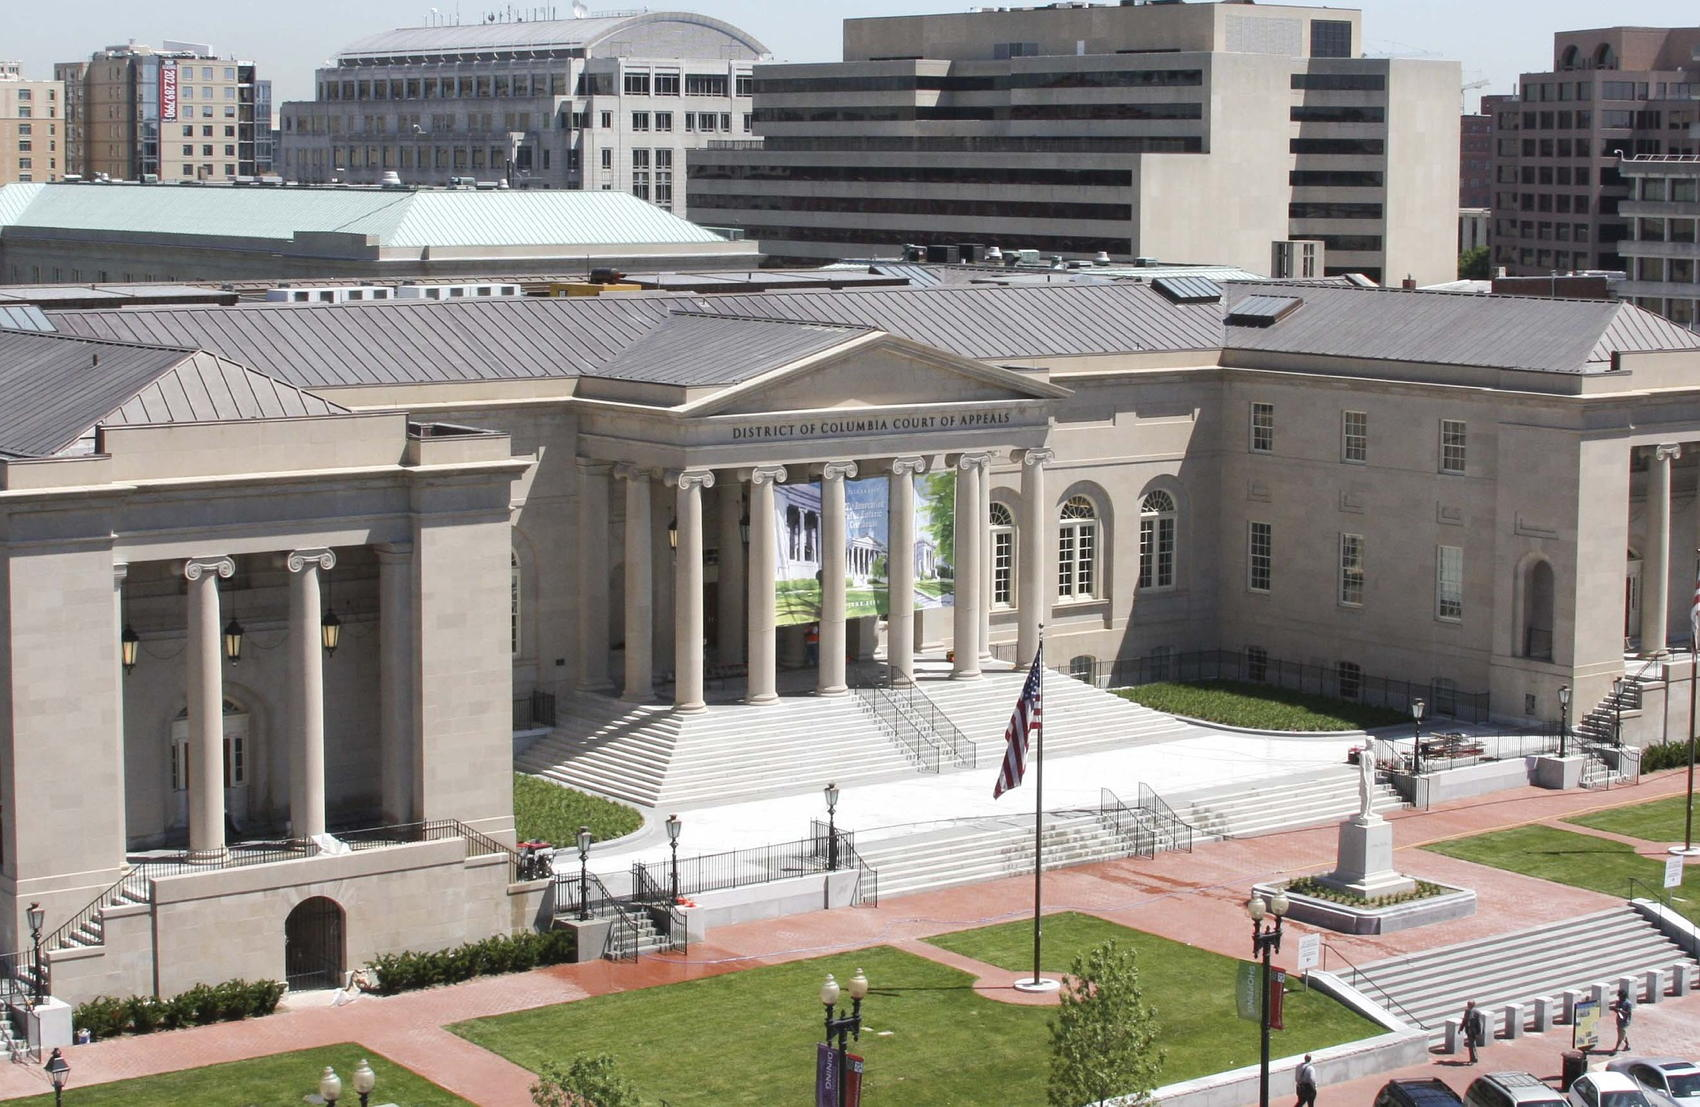 Historic Courthouse Judiciary Square - Image by DCCourts